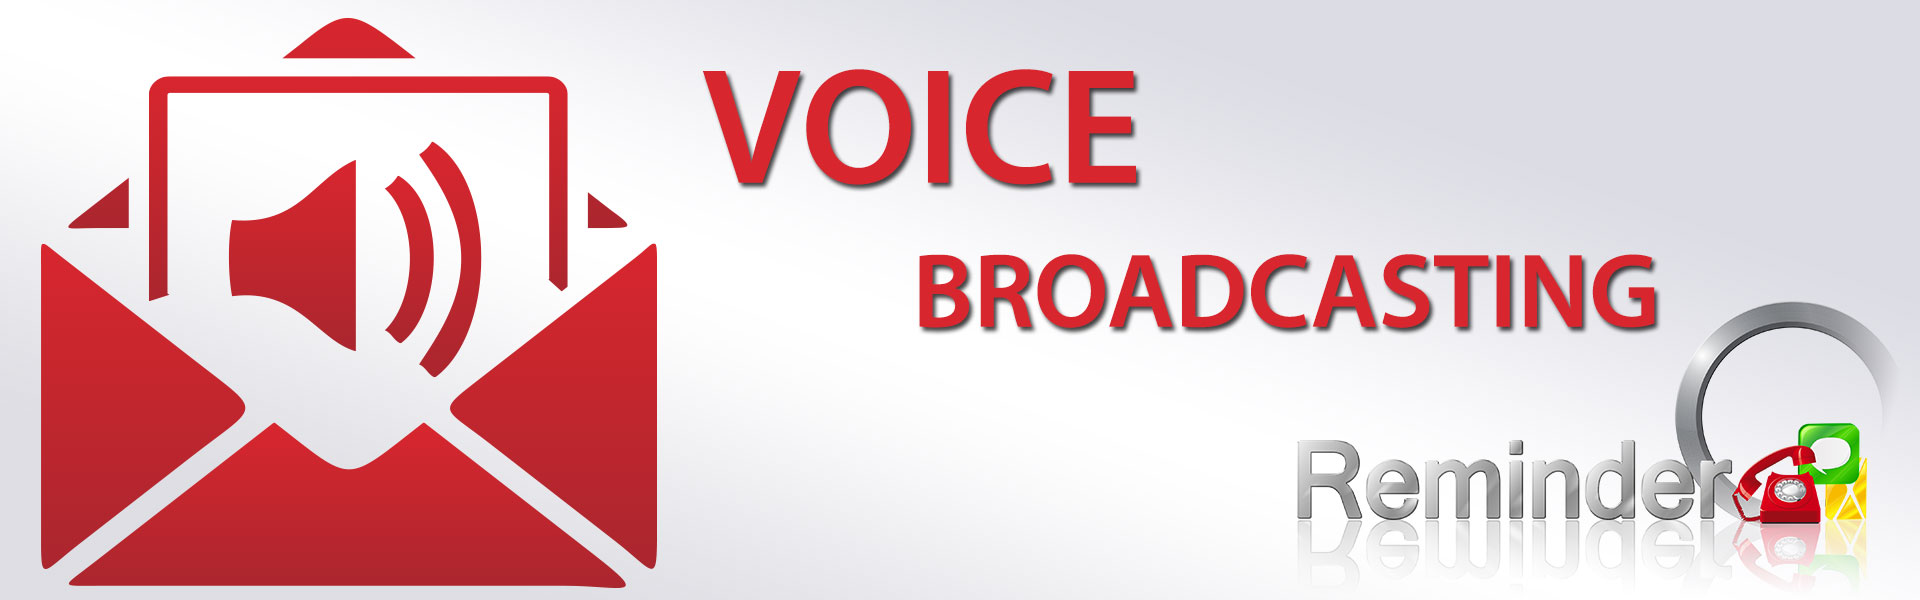 Mass Voice Broadcasting Software